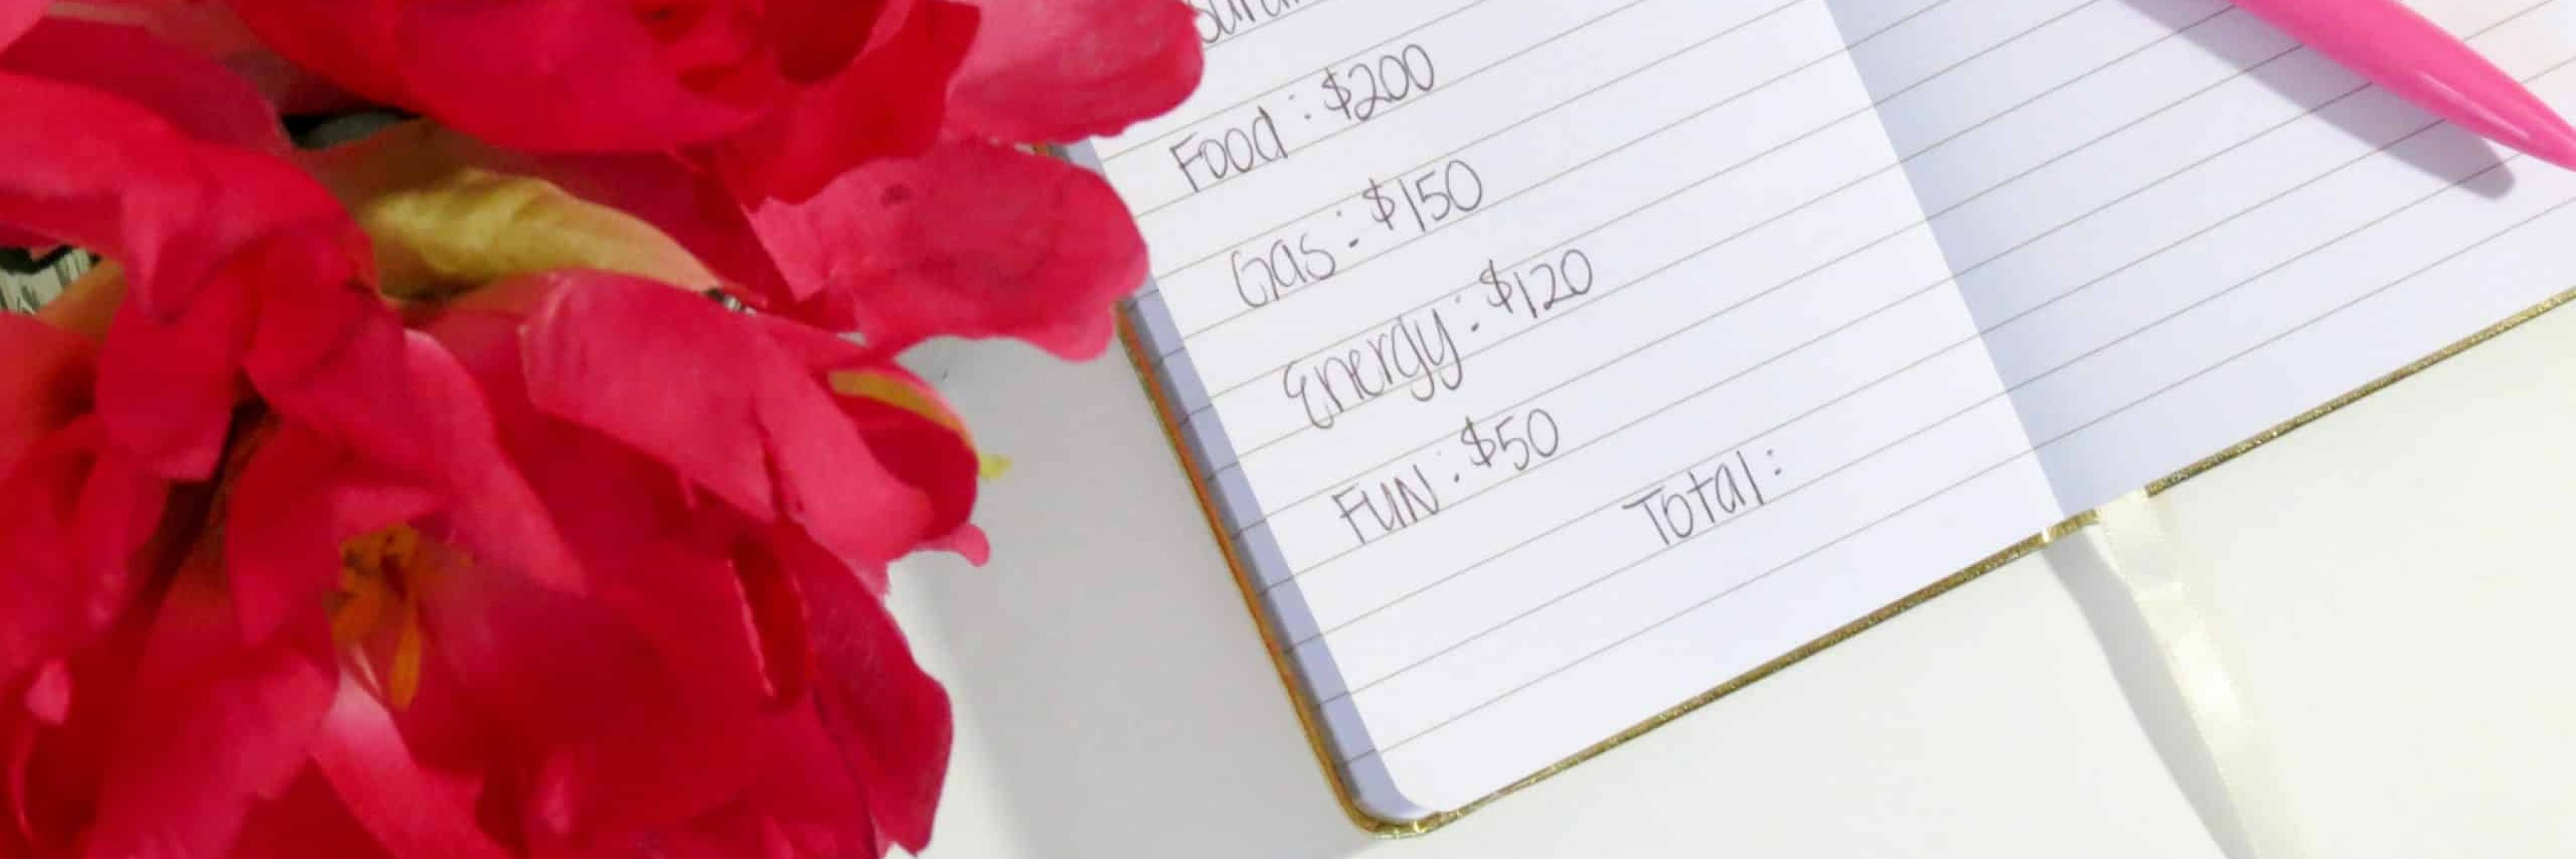 Budgeting tips for families and homes